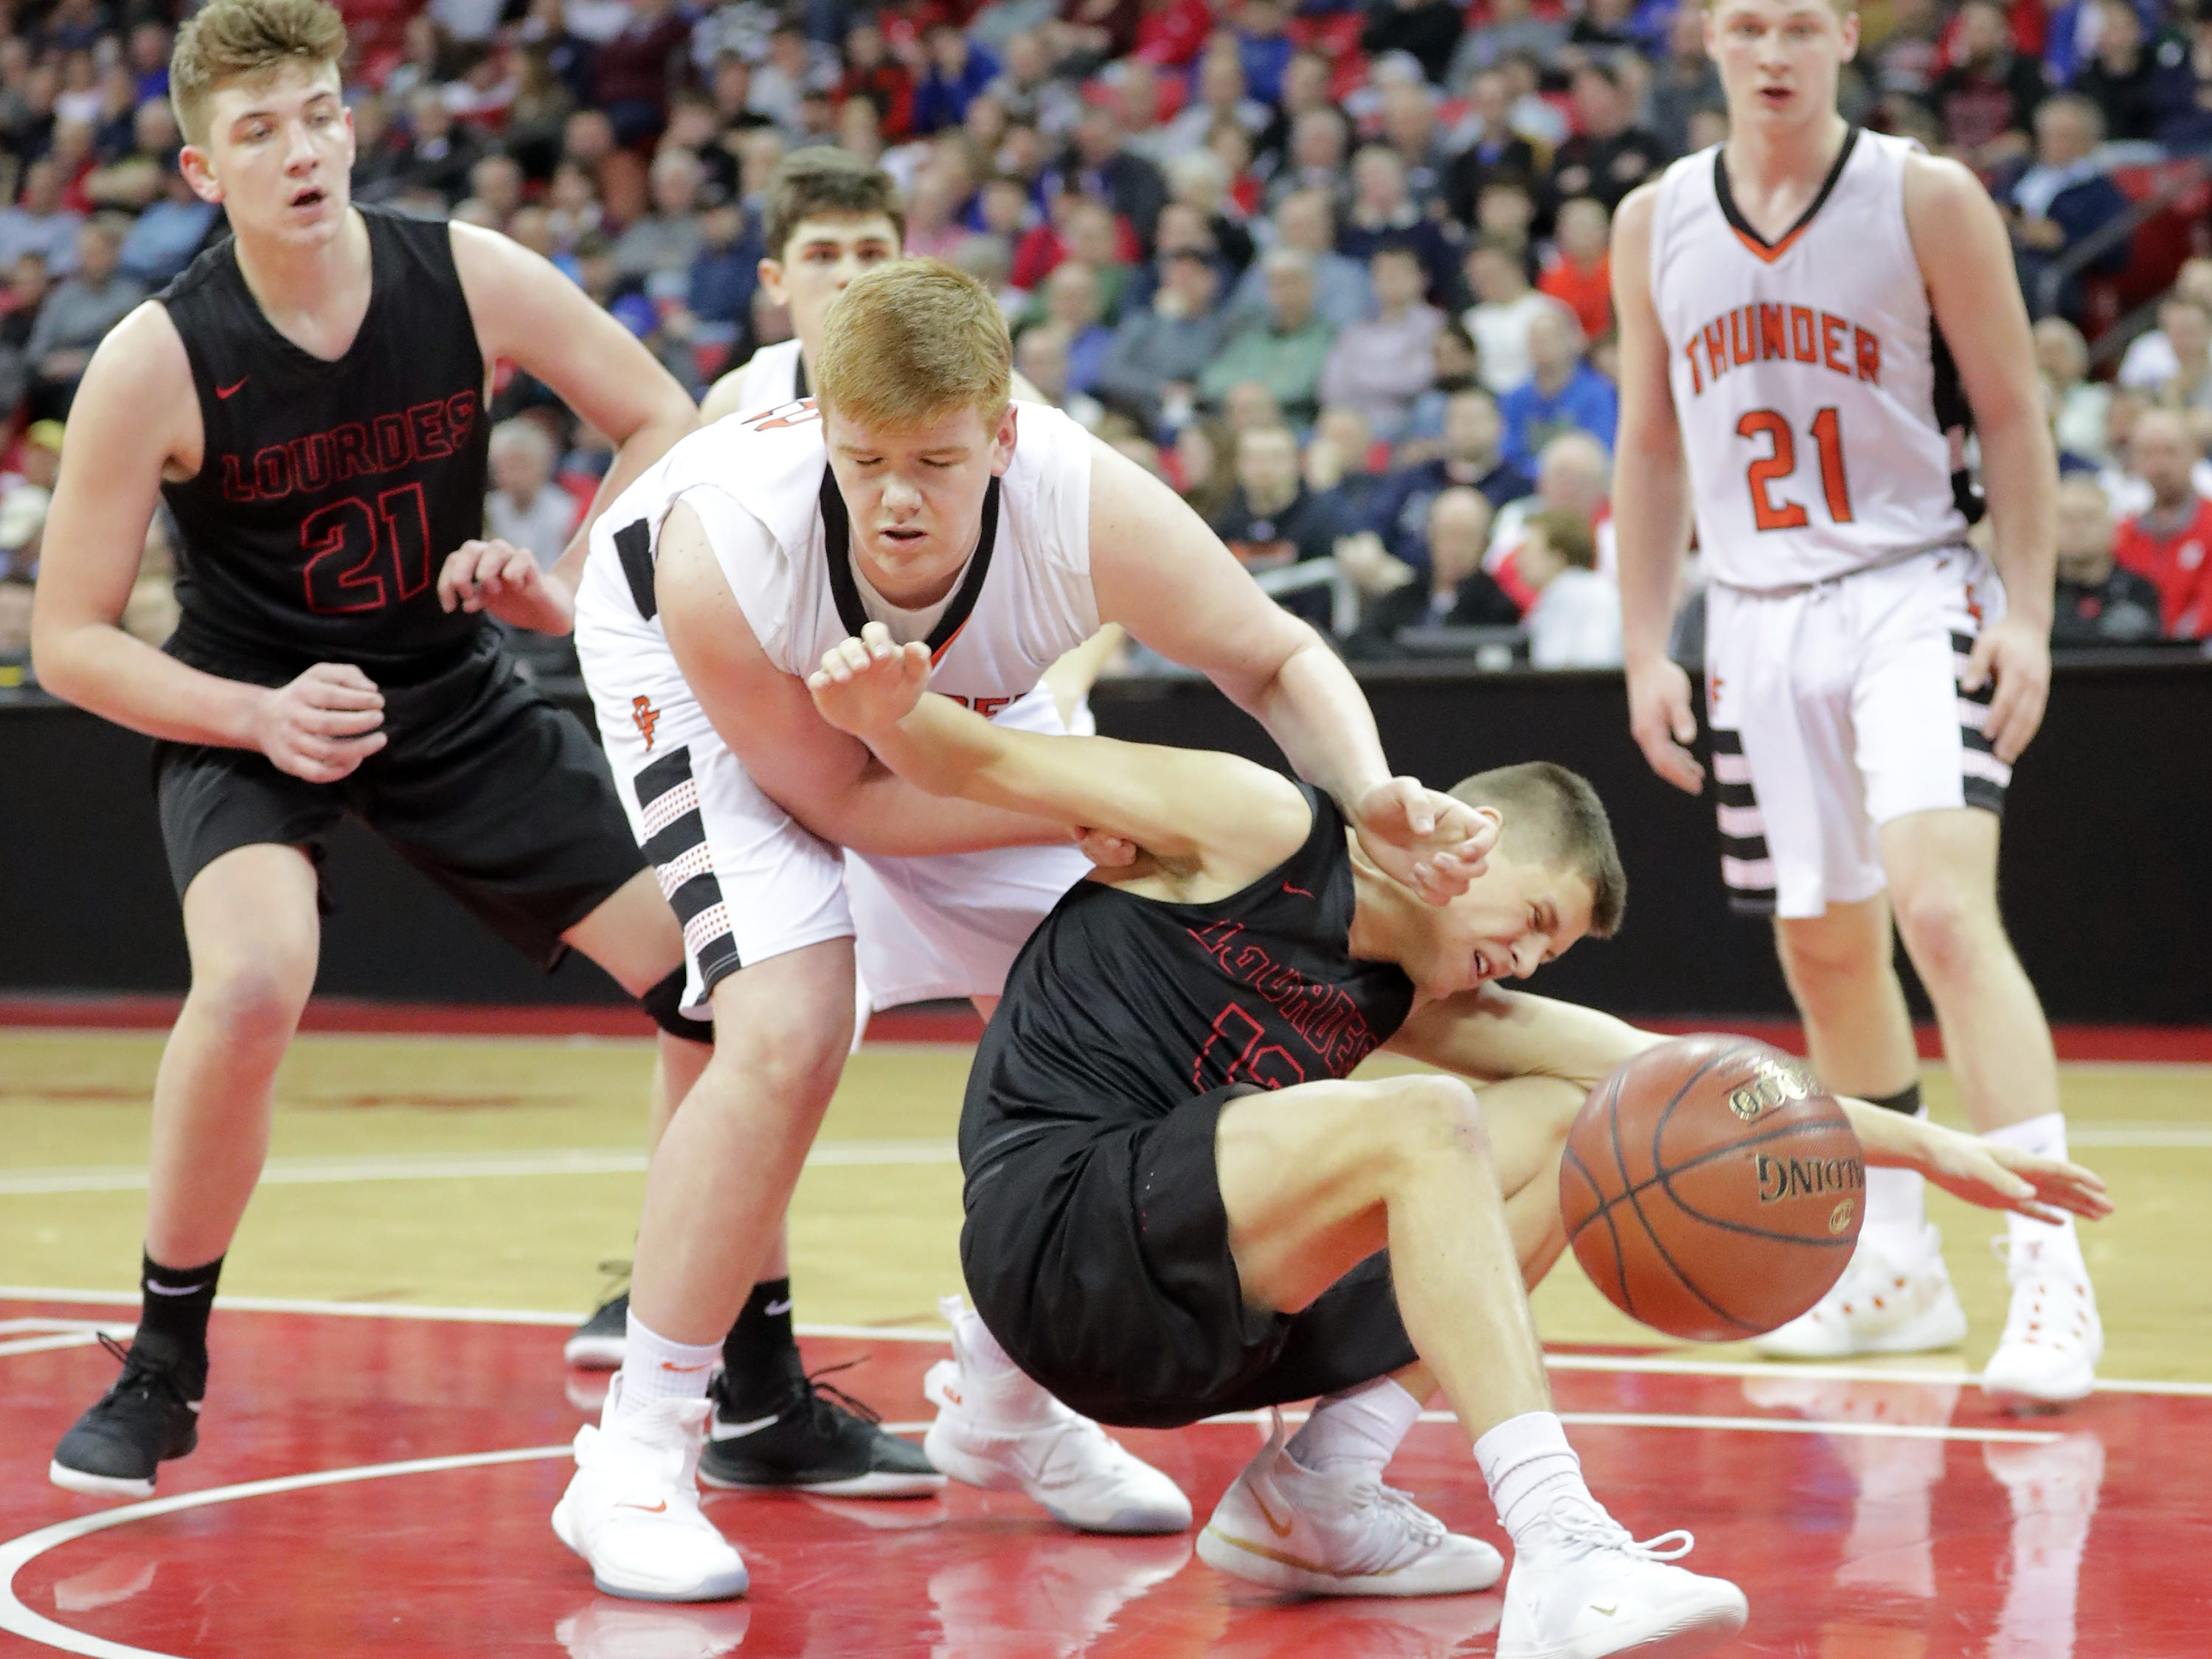 Lourdes Academy's #13 Caden Chier battle against Osseo-Fairchild High School's #52 Cory Myhers during their WIAA Division 4 boys basketball state semifinal on Thursday, March 14, 2019, at the Kohl Center in Madison, Wis.